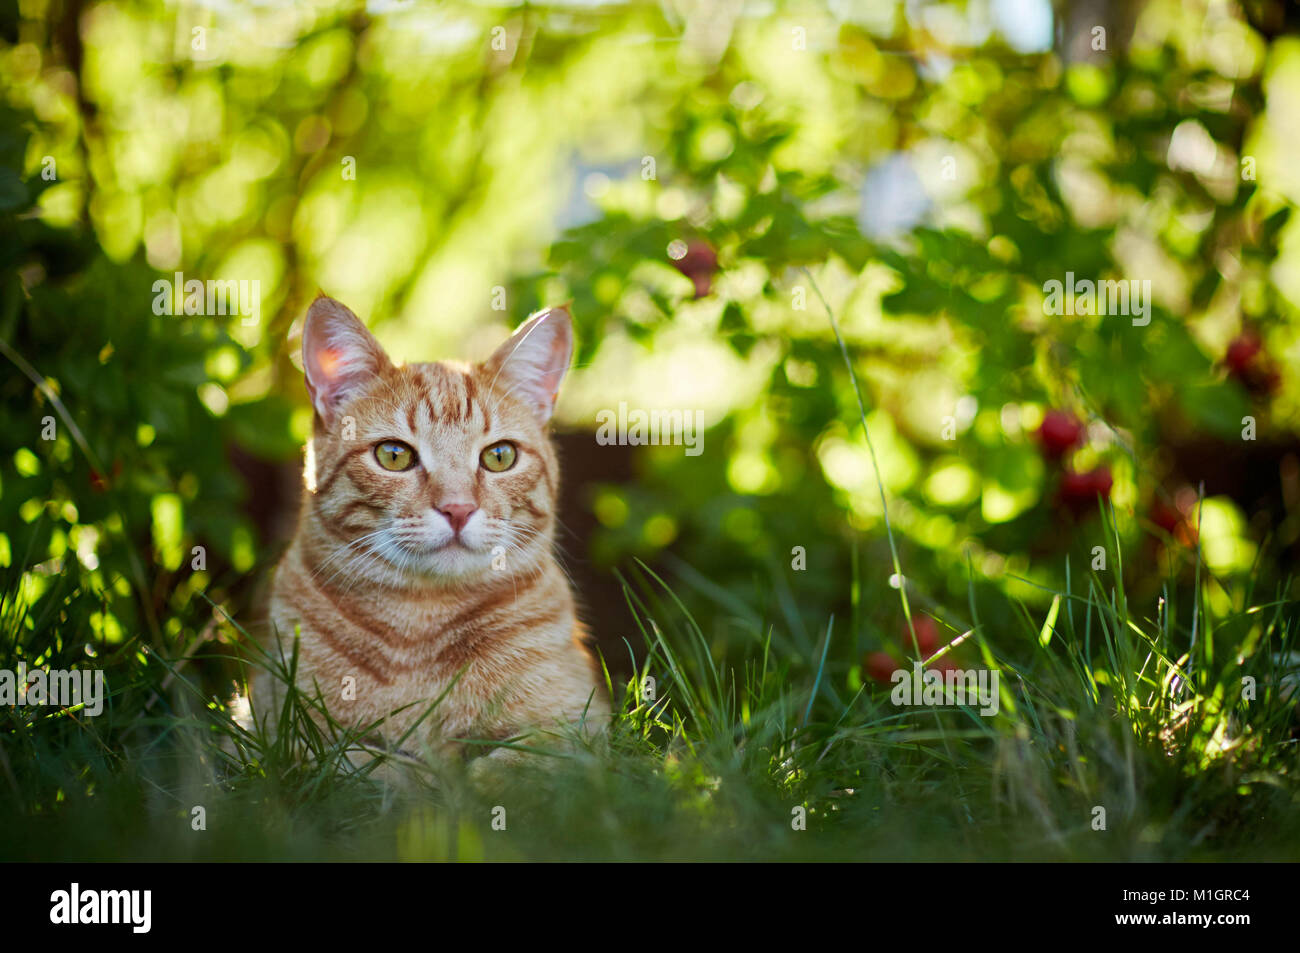 Domestic cat. Red tabby adult lying in grass. Germany - Stock Image